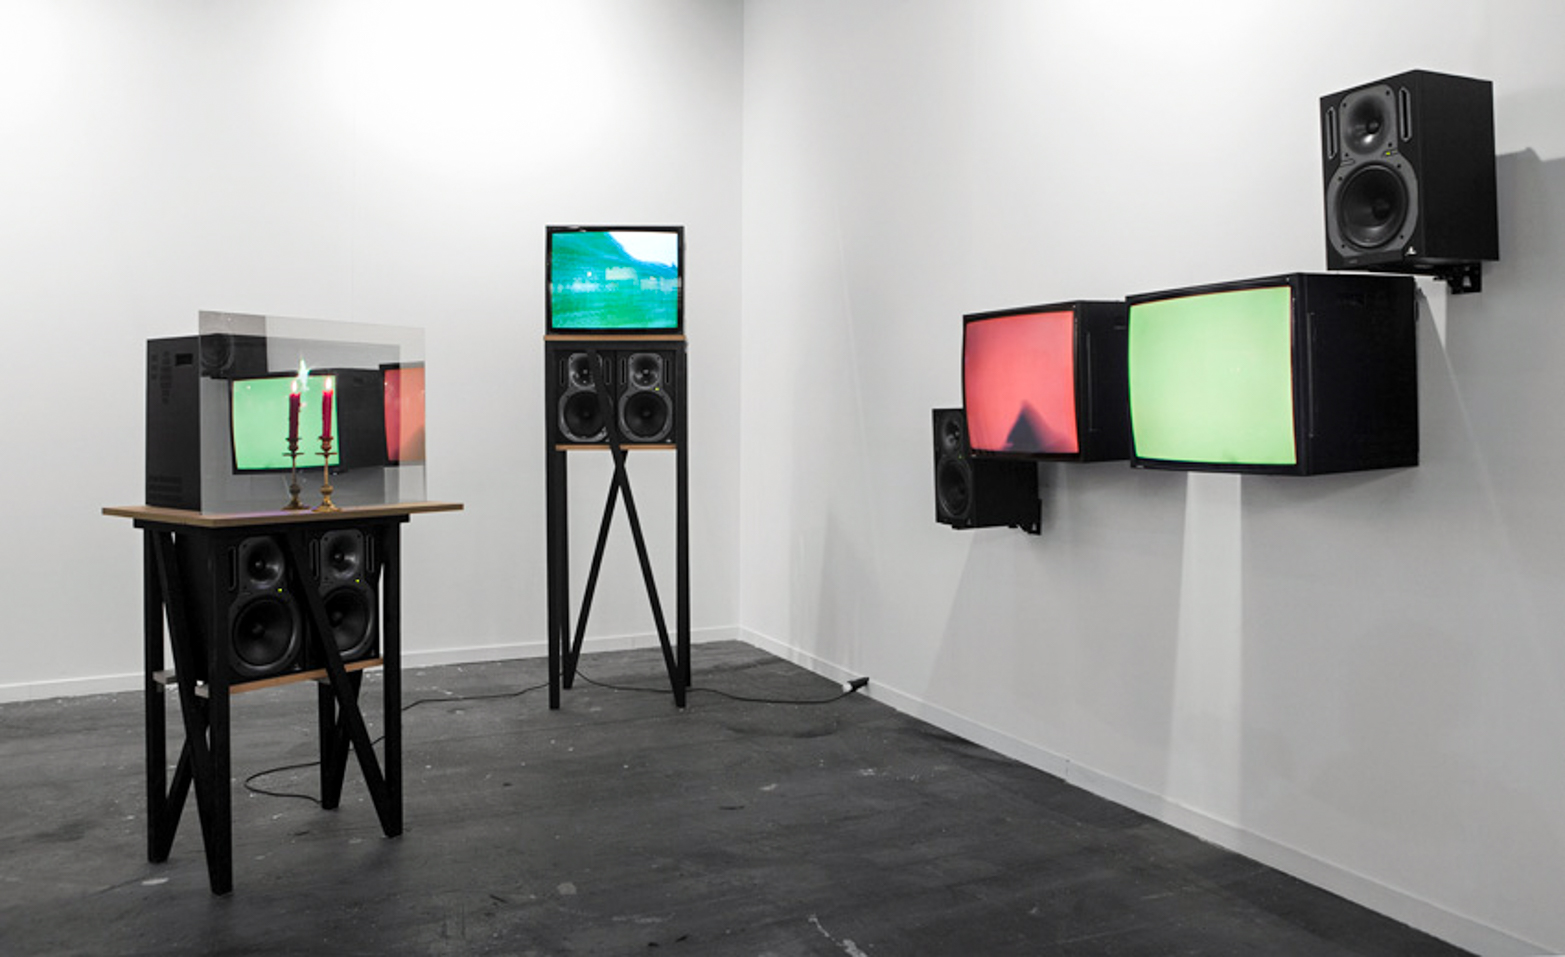 David Ferrando Giraut, MFSuite, Installation View, 2013.